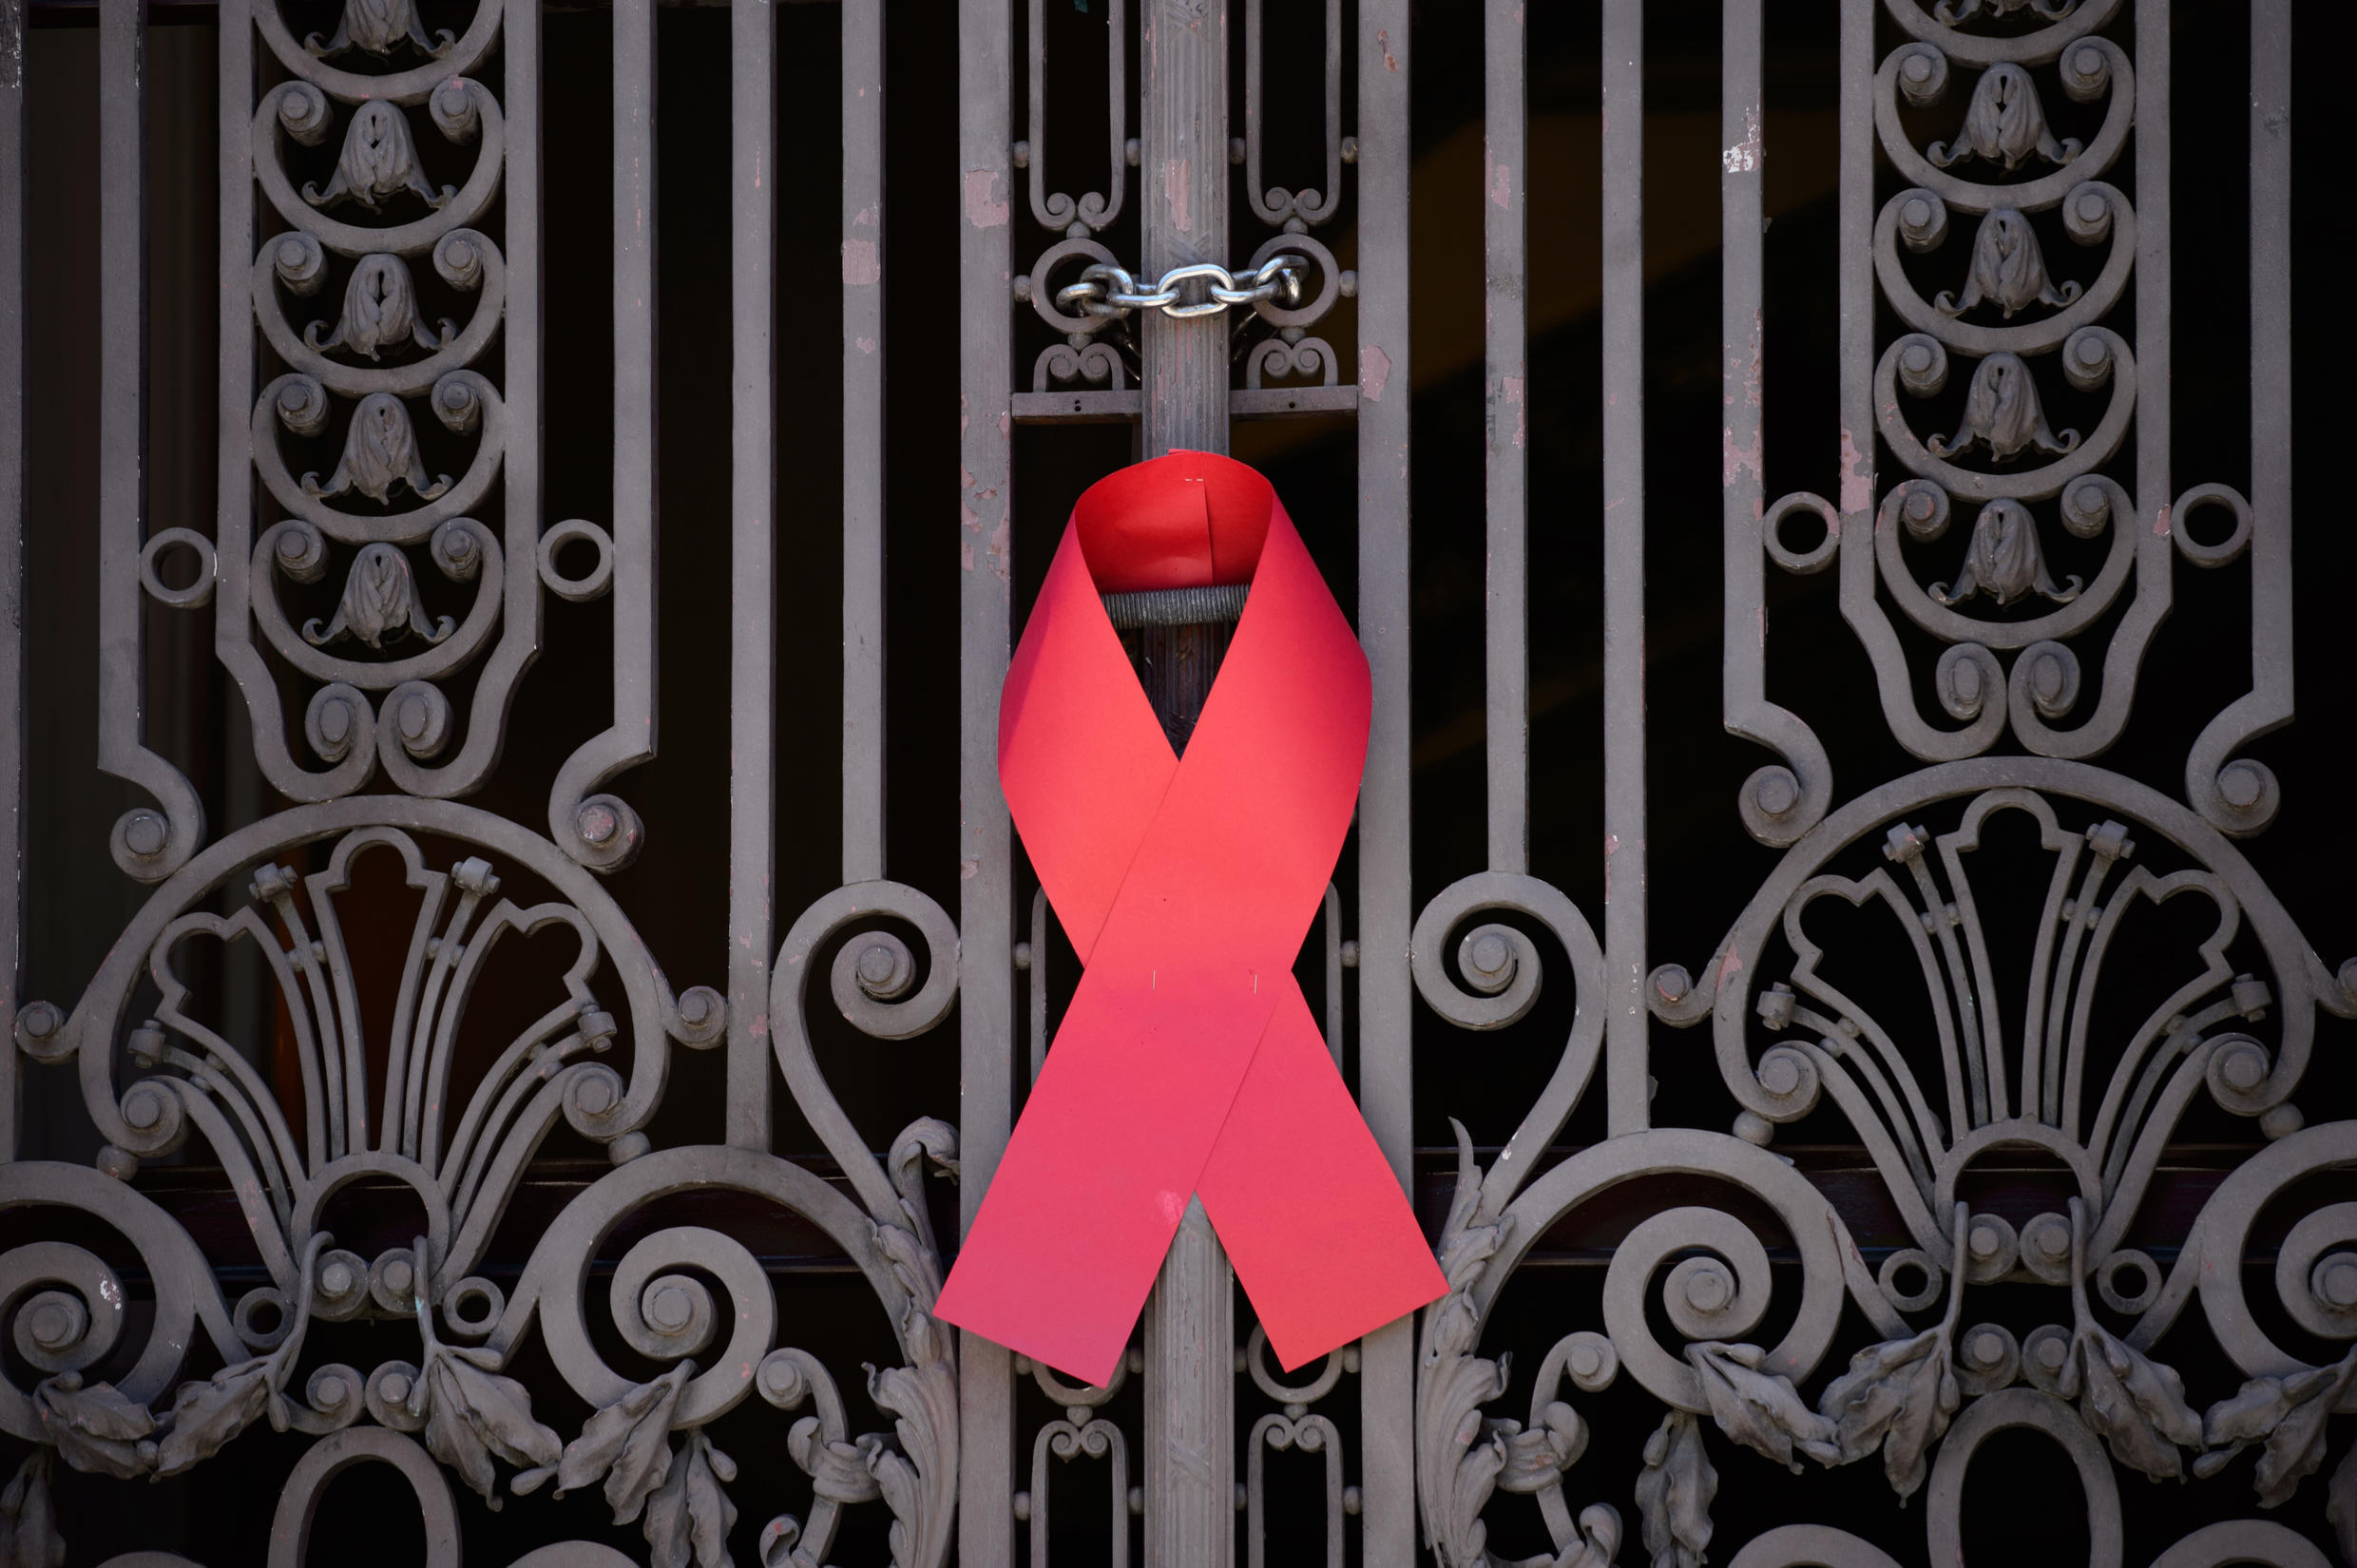 More than 37 million people suffer from HIV, the virus that causes AIDS